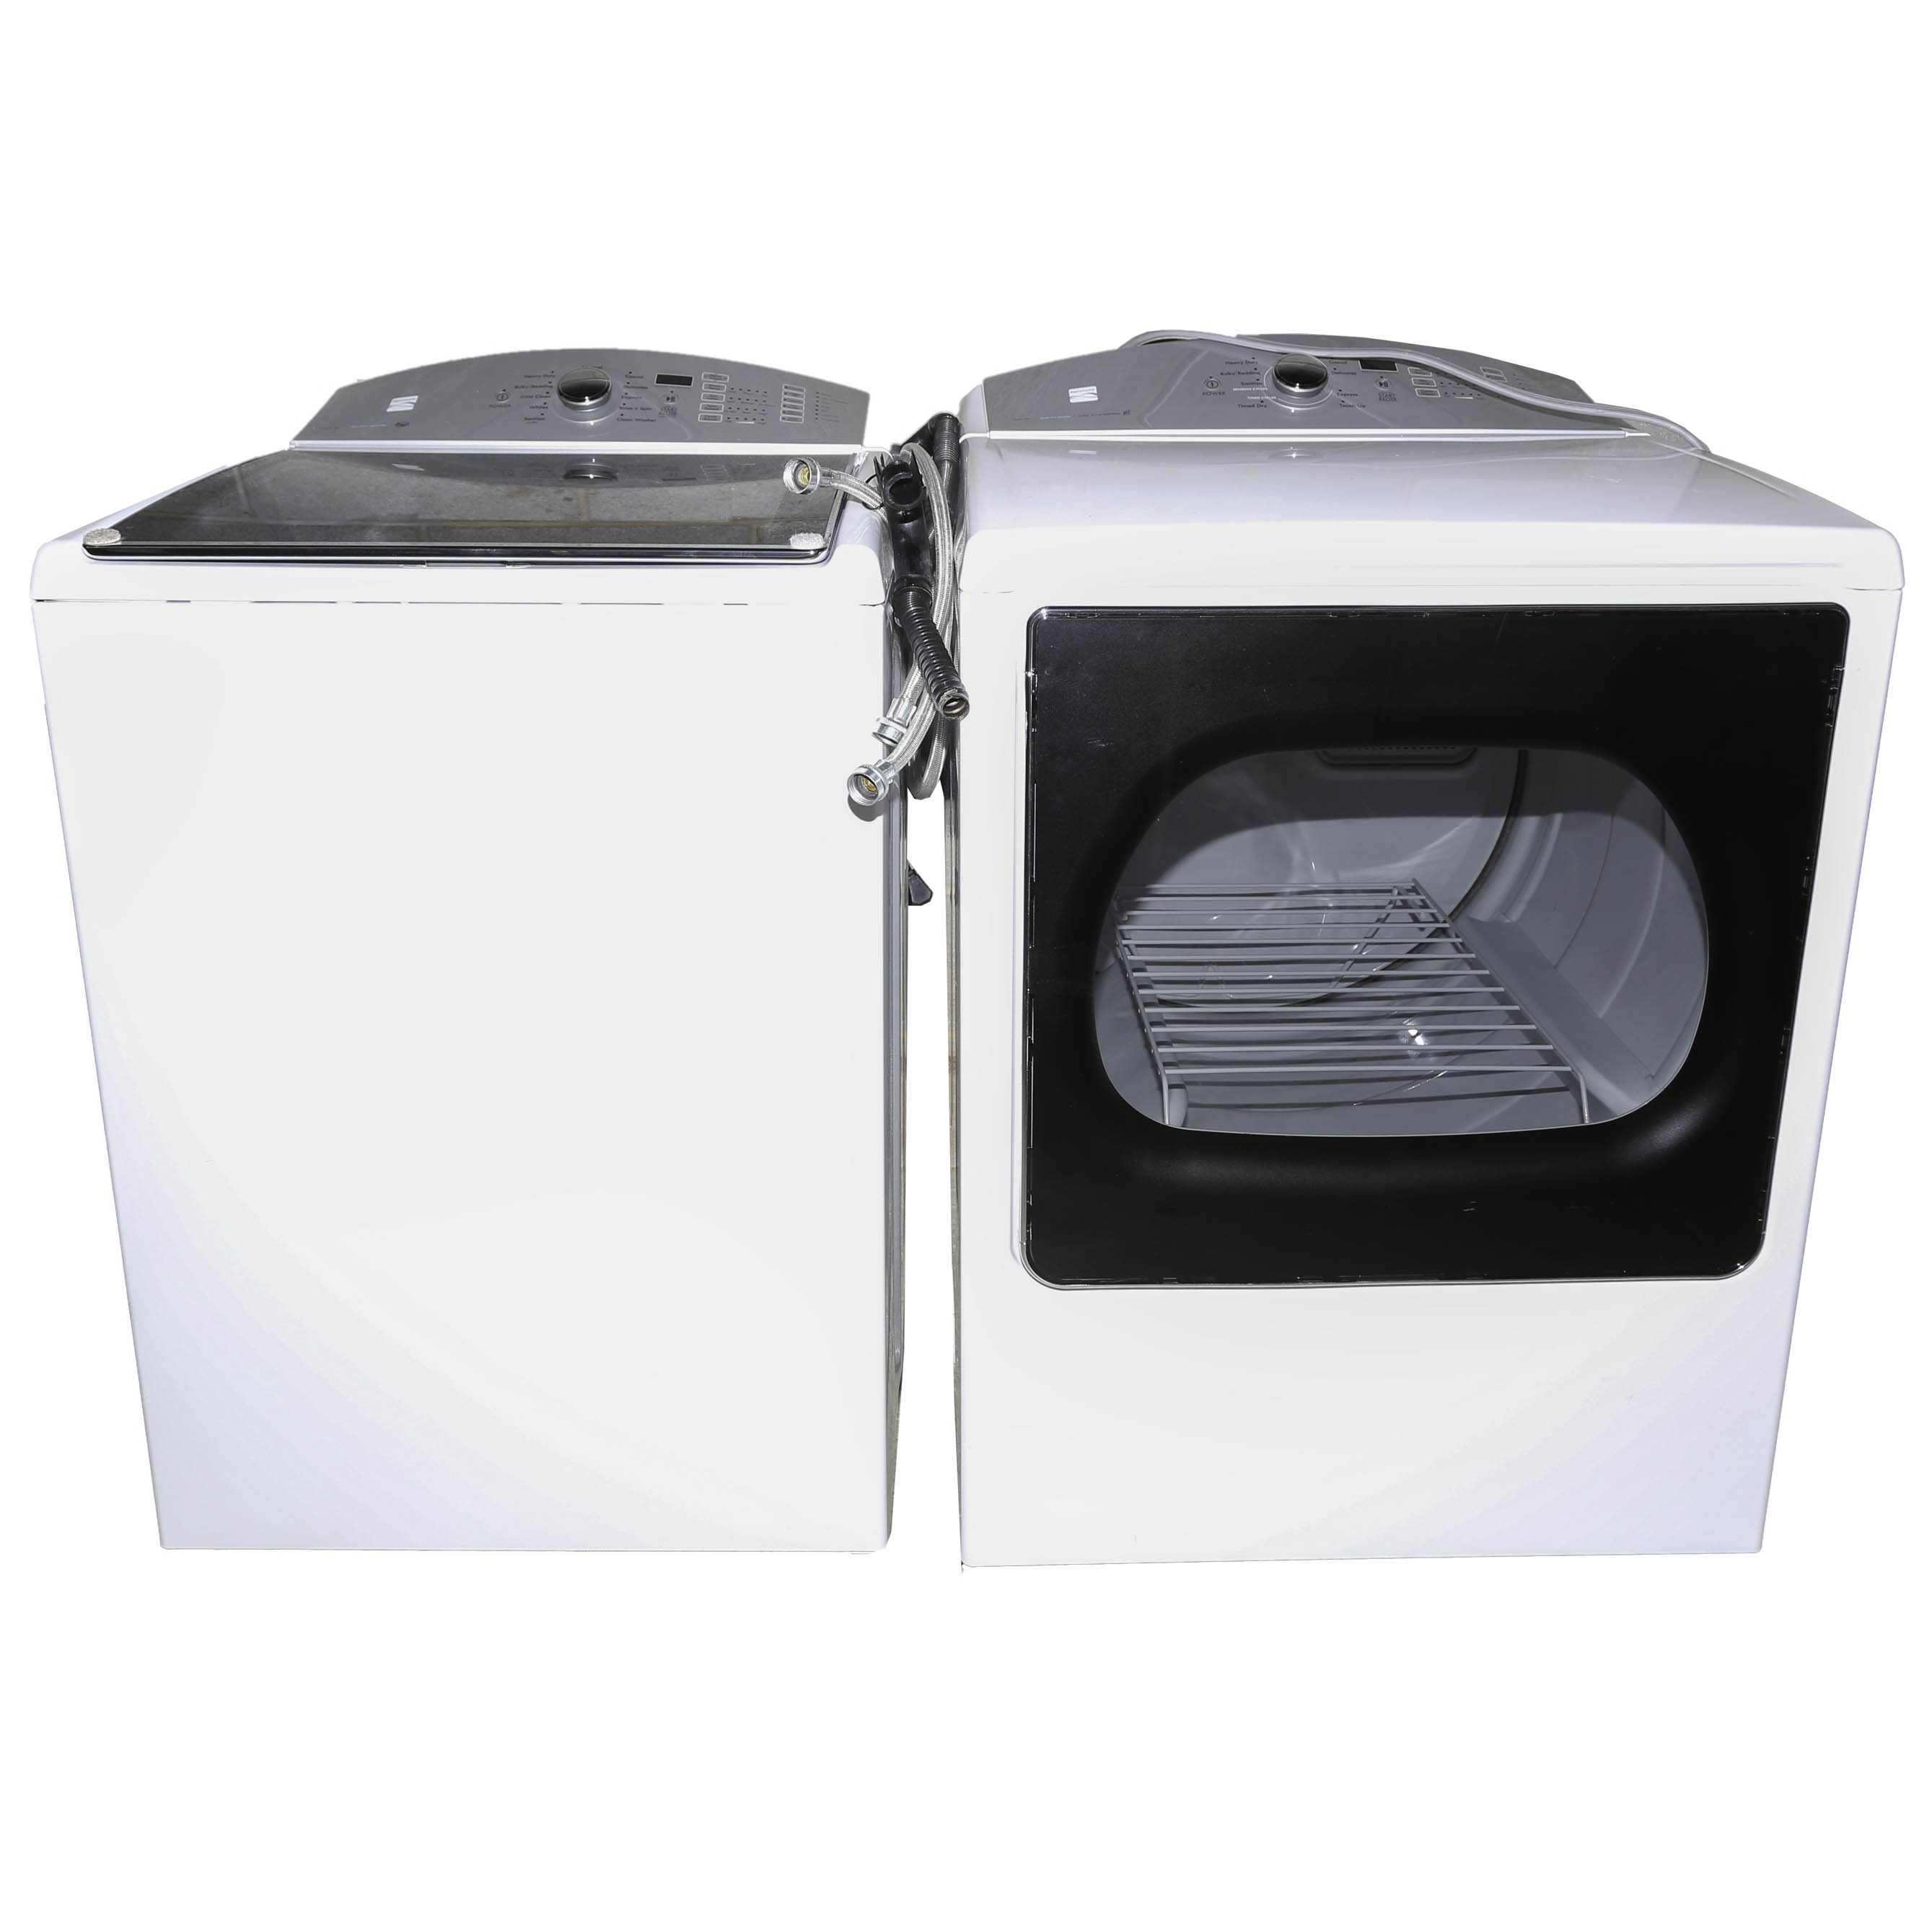 Kenmore Series 700 Washer and Dryer EBTH